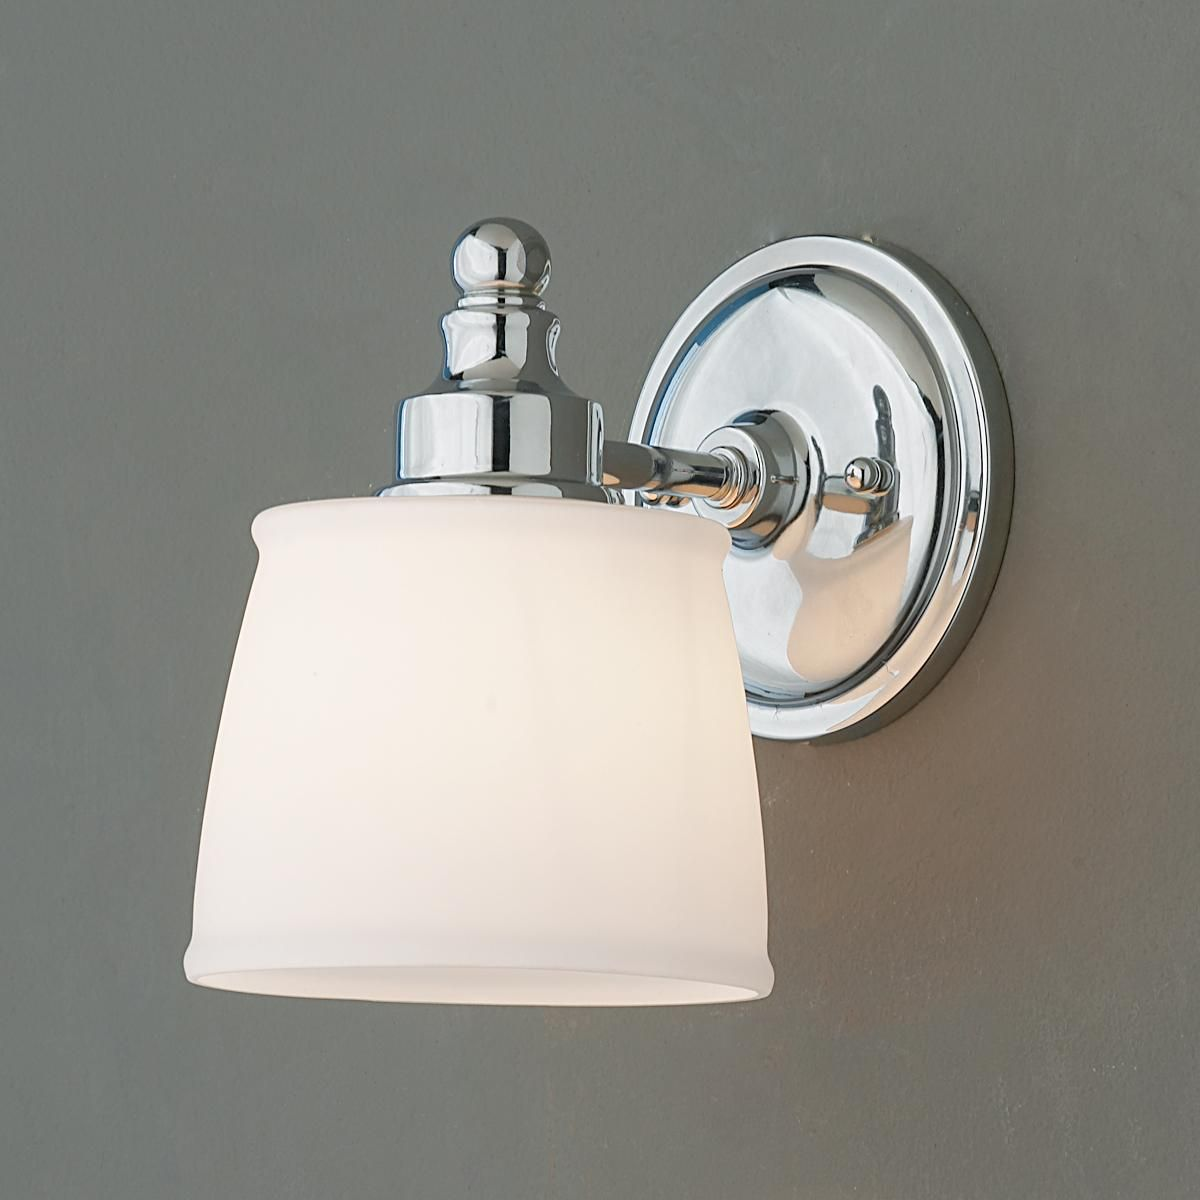 Bygone classic bath light 1 light classic baths bath light and bath bygone classic bath light 1 light audiocablefo